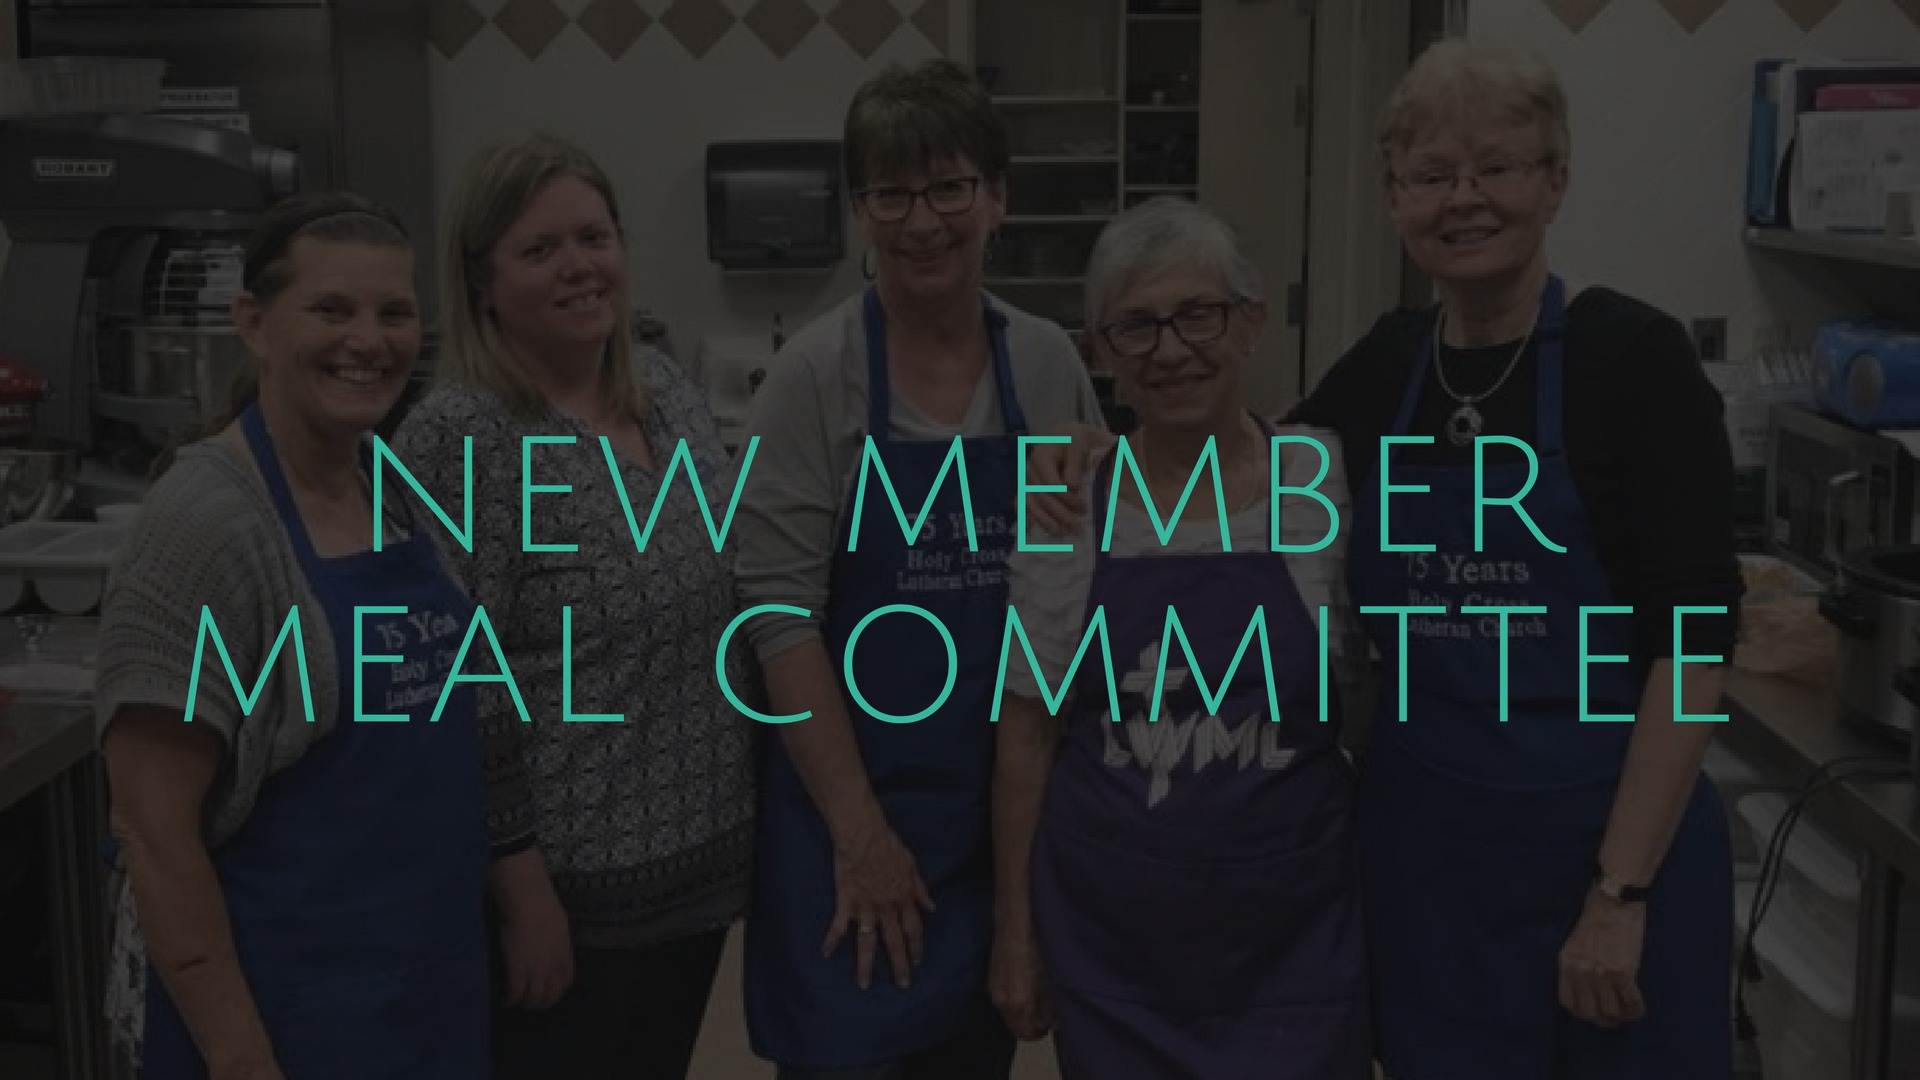 New Member Meal Committee